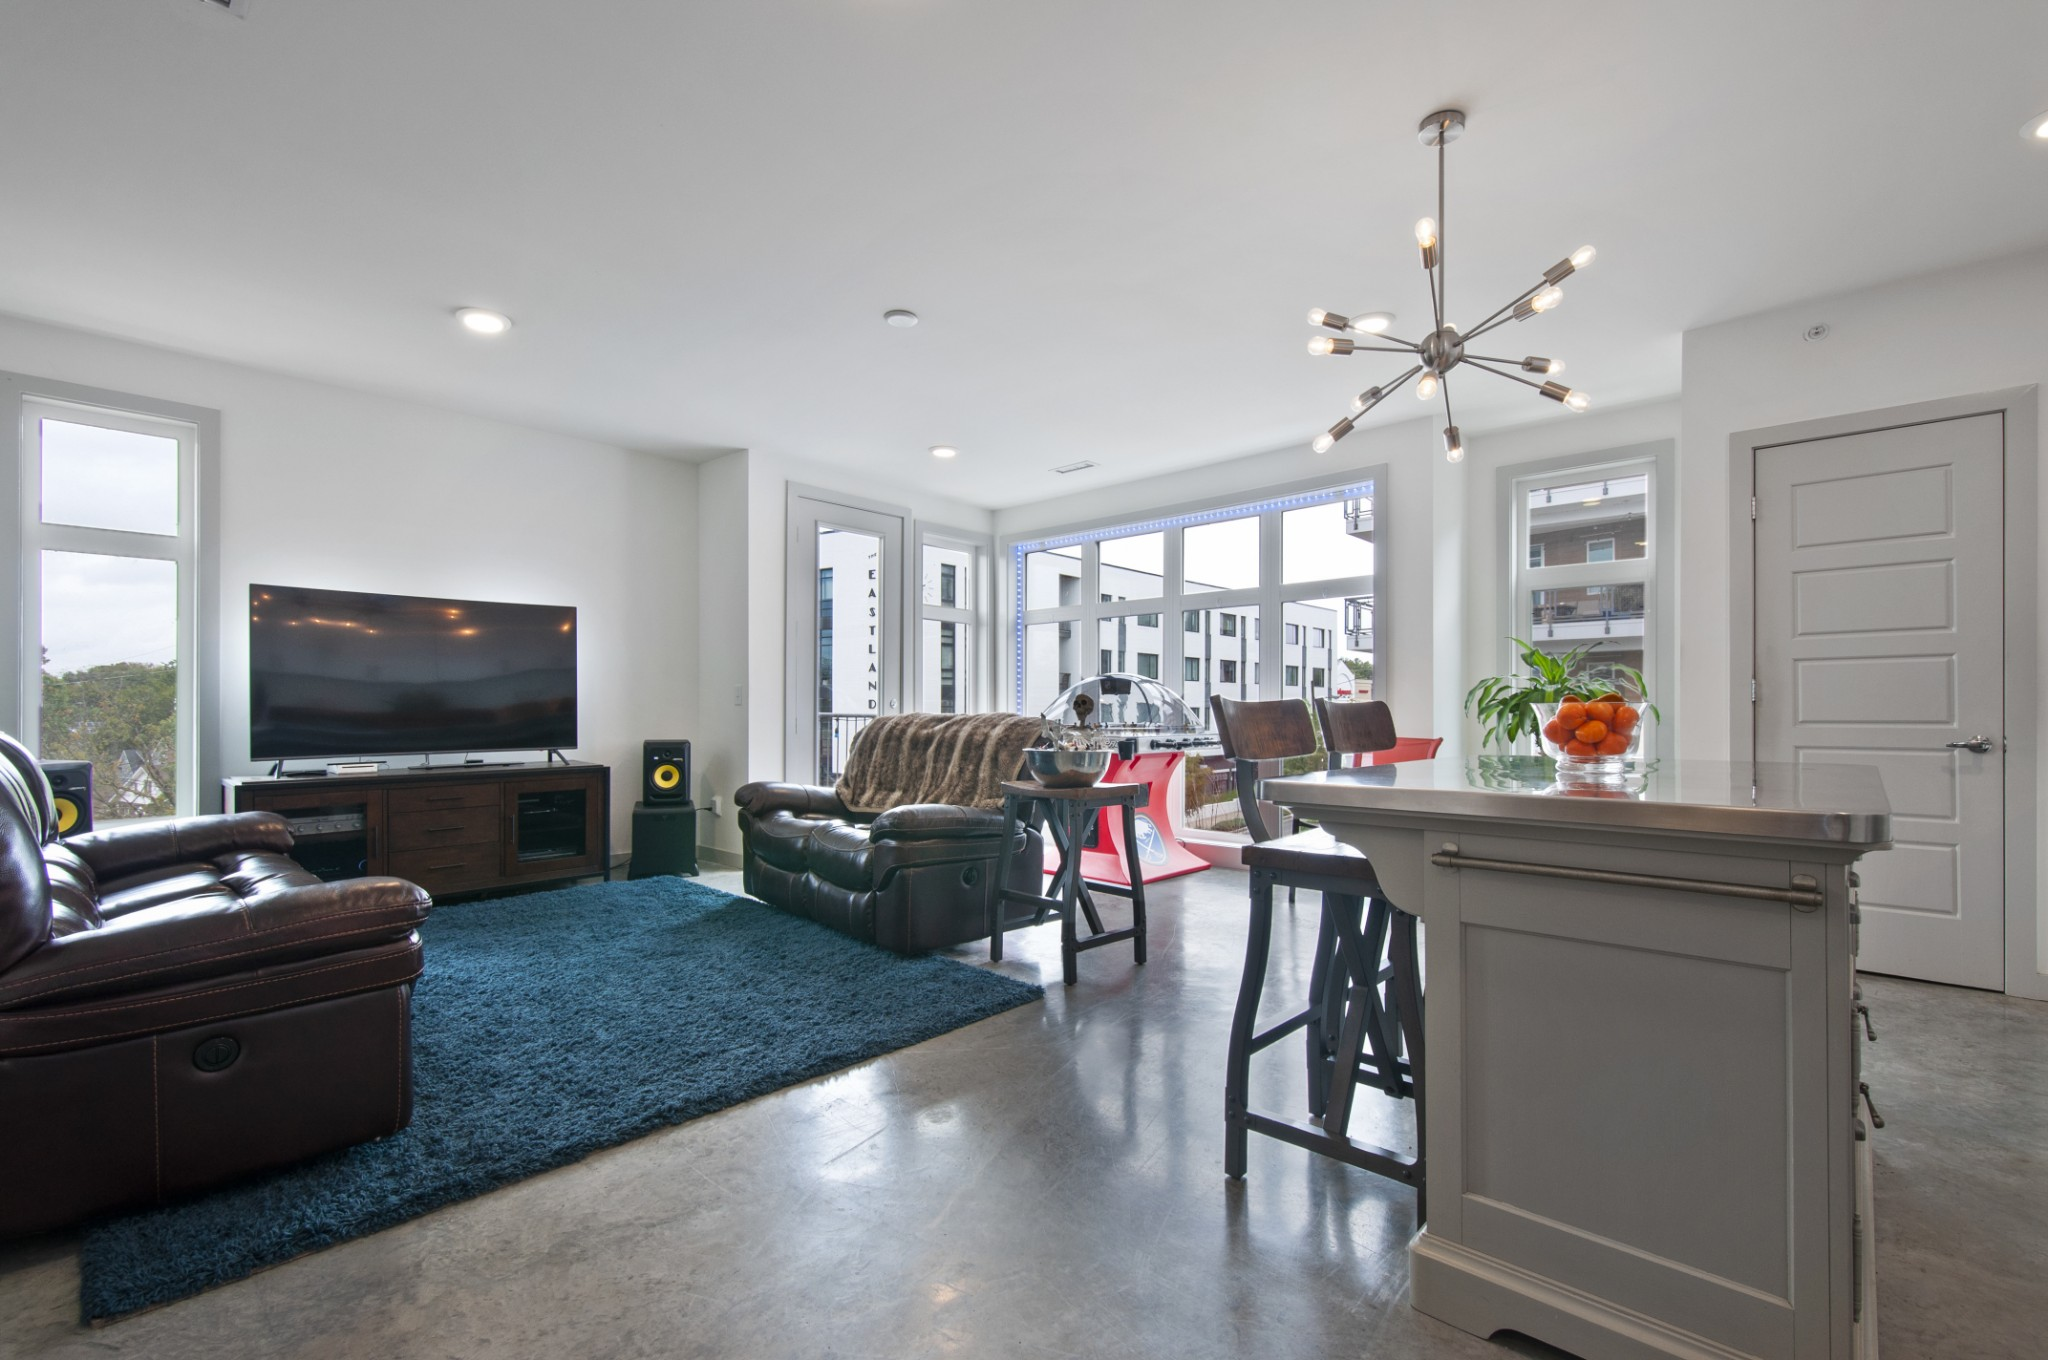 Gorgeous top floor condo with a view! Spacious and spectacular! Here's your chance to own a like new unit in the heart of East Nashville.